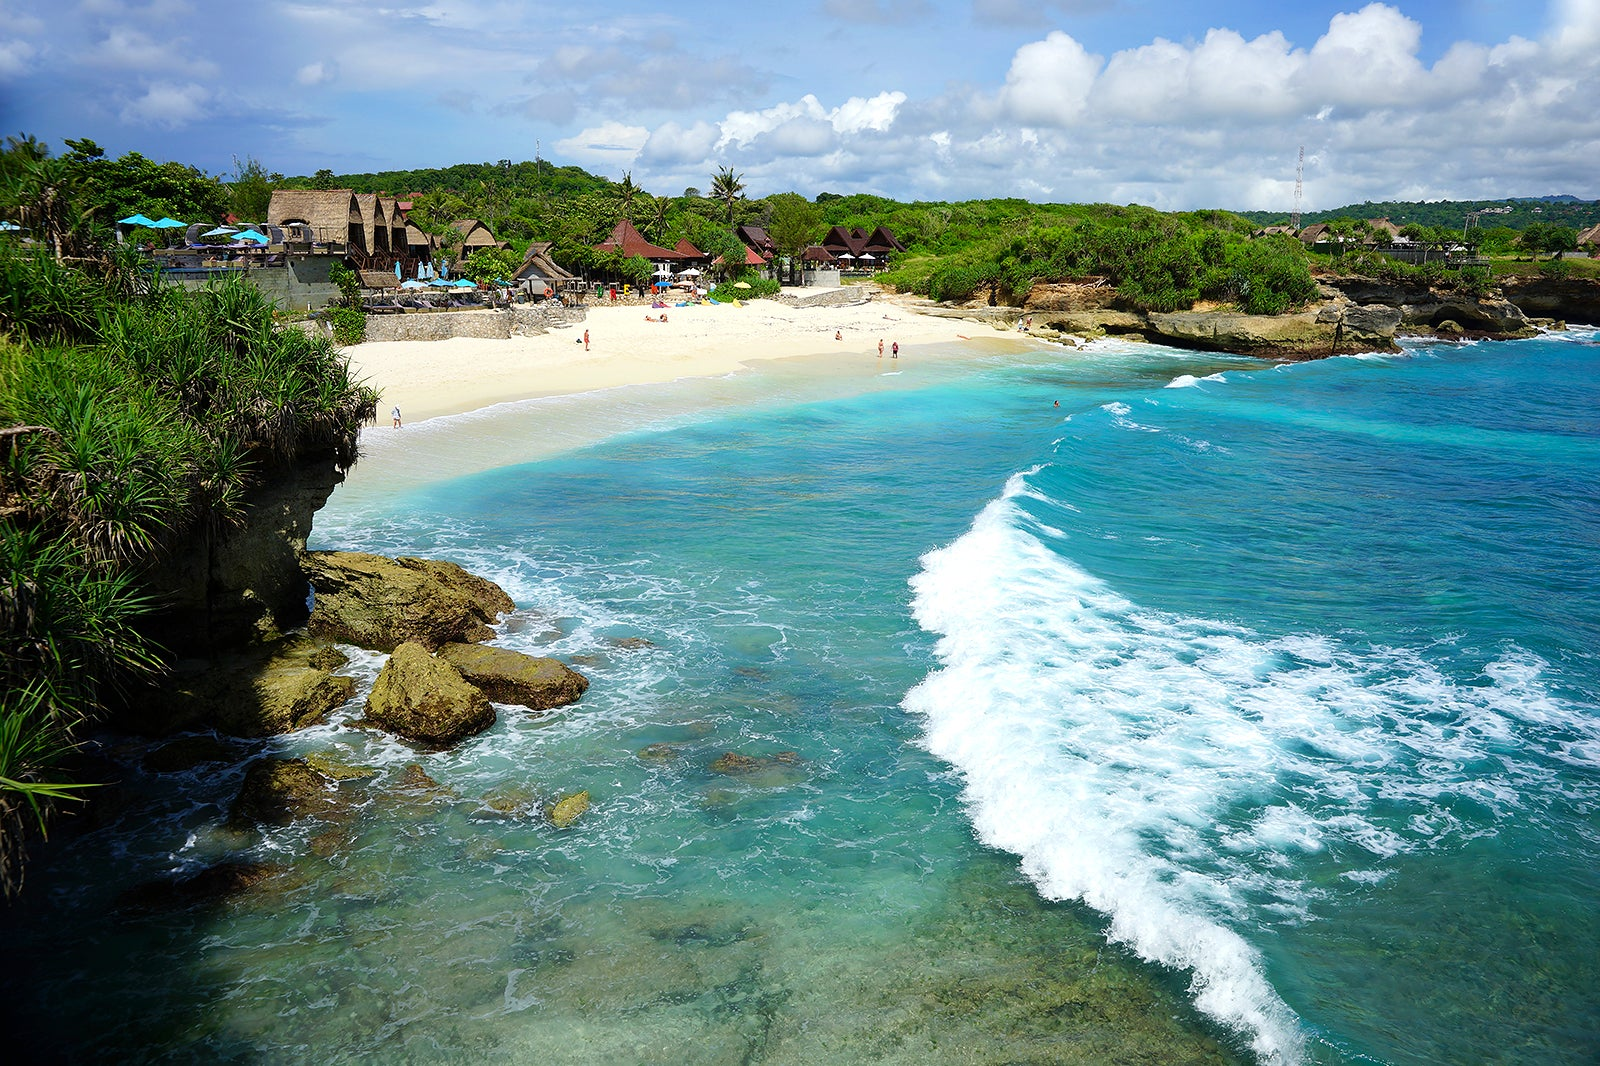 Bali is Listed as Top 10 Best Islands in the World